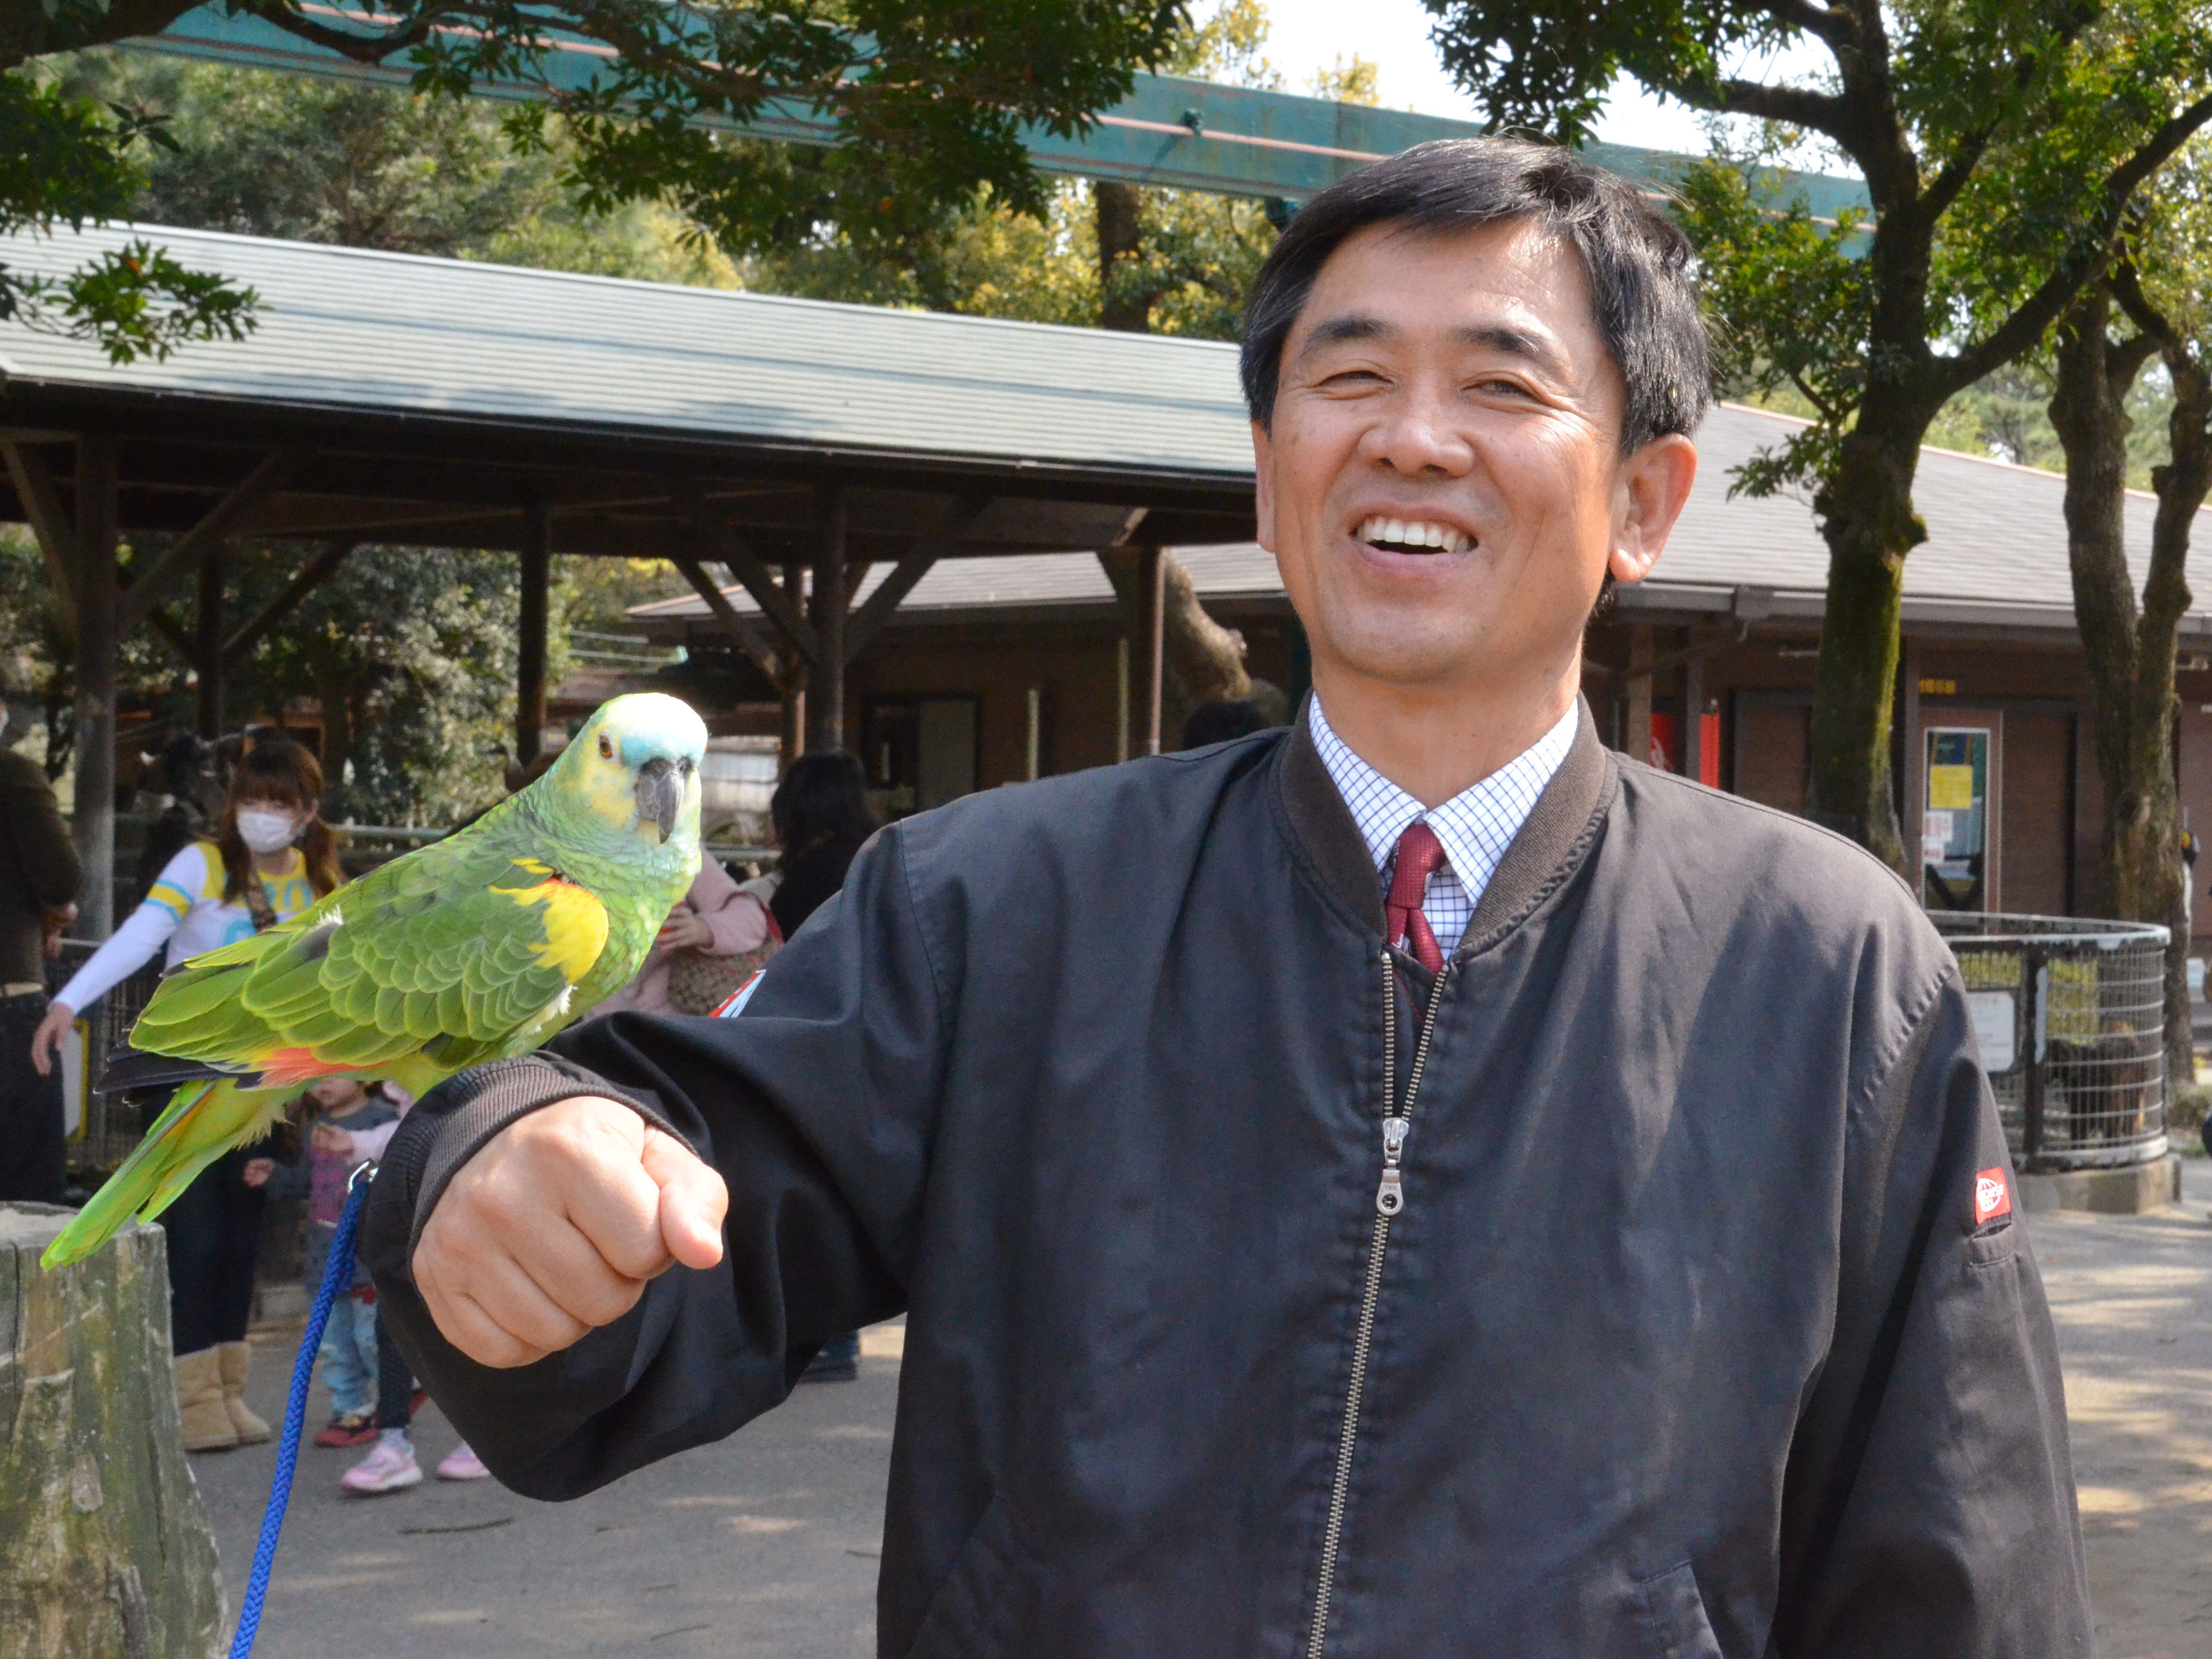 Star attraction: A Blue-fronted Amazon parrot named Tiffany perches on the arm of Toshihisa Deguchi, head of Miyazaki City Phoenix Zoo, on March 10.   KYODO